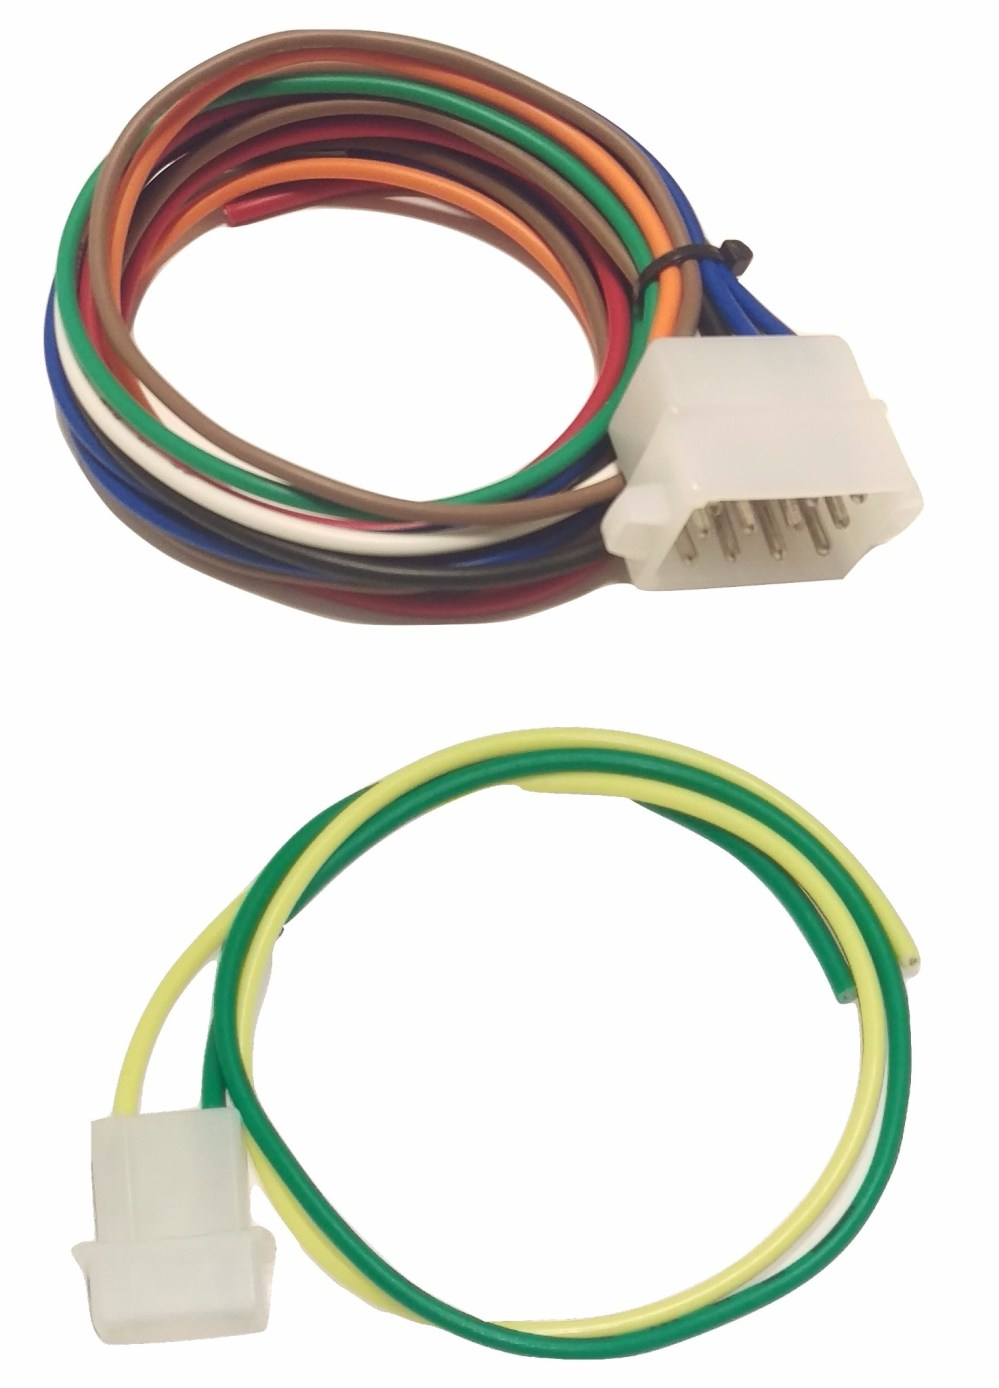 medium resolution of whelen power harness plug cable 12 3 pin 295hfsa1 whelen 295hfsa1 wiring harness